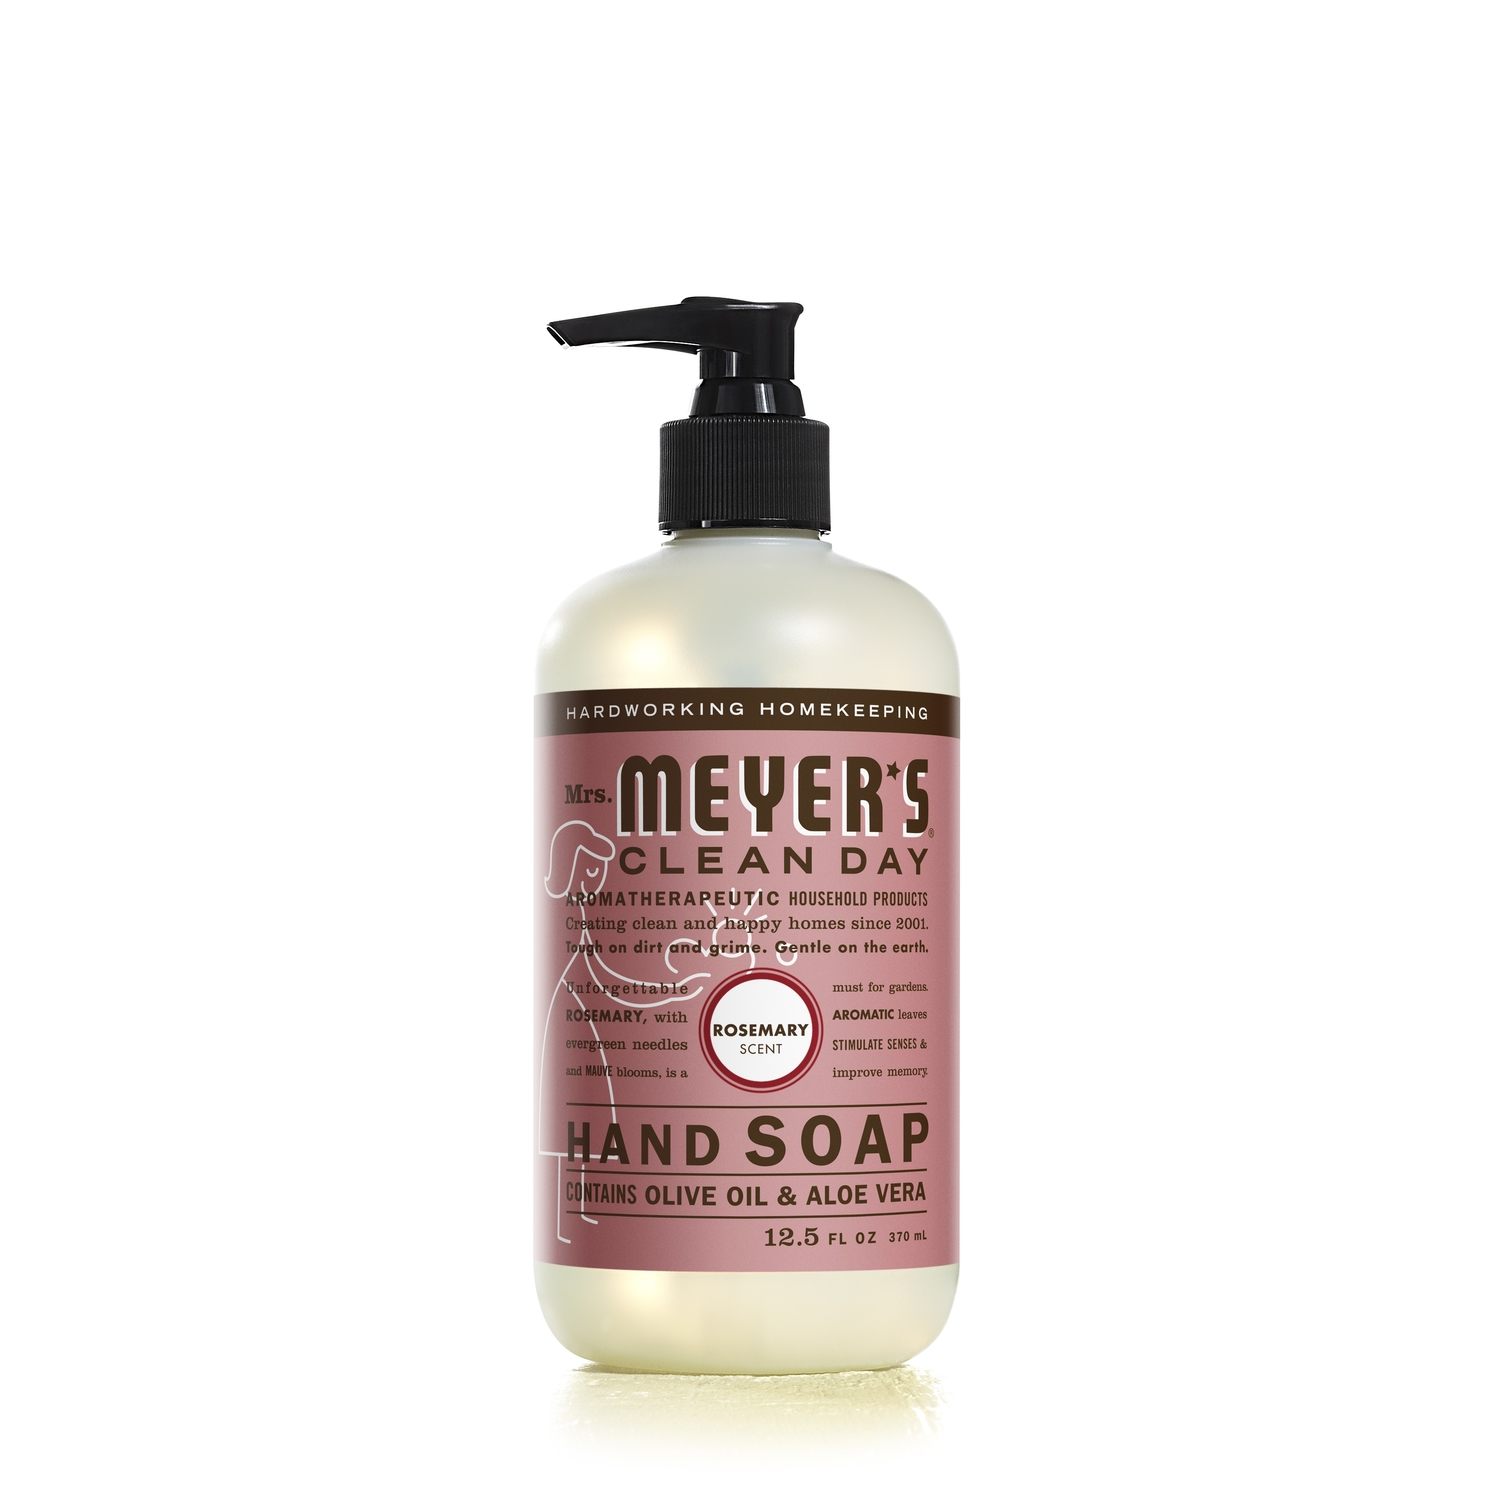 Mrs. Meyer's Clean Day 12.5 oz. Liquid Hand Soap Rosemary Scent